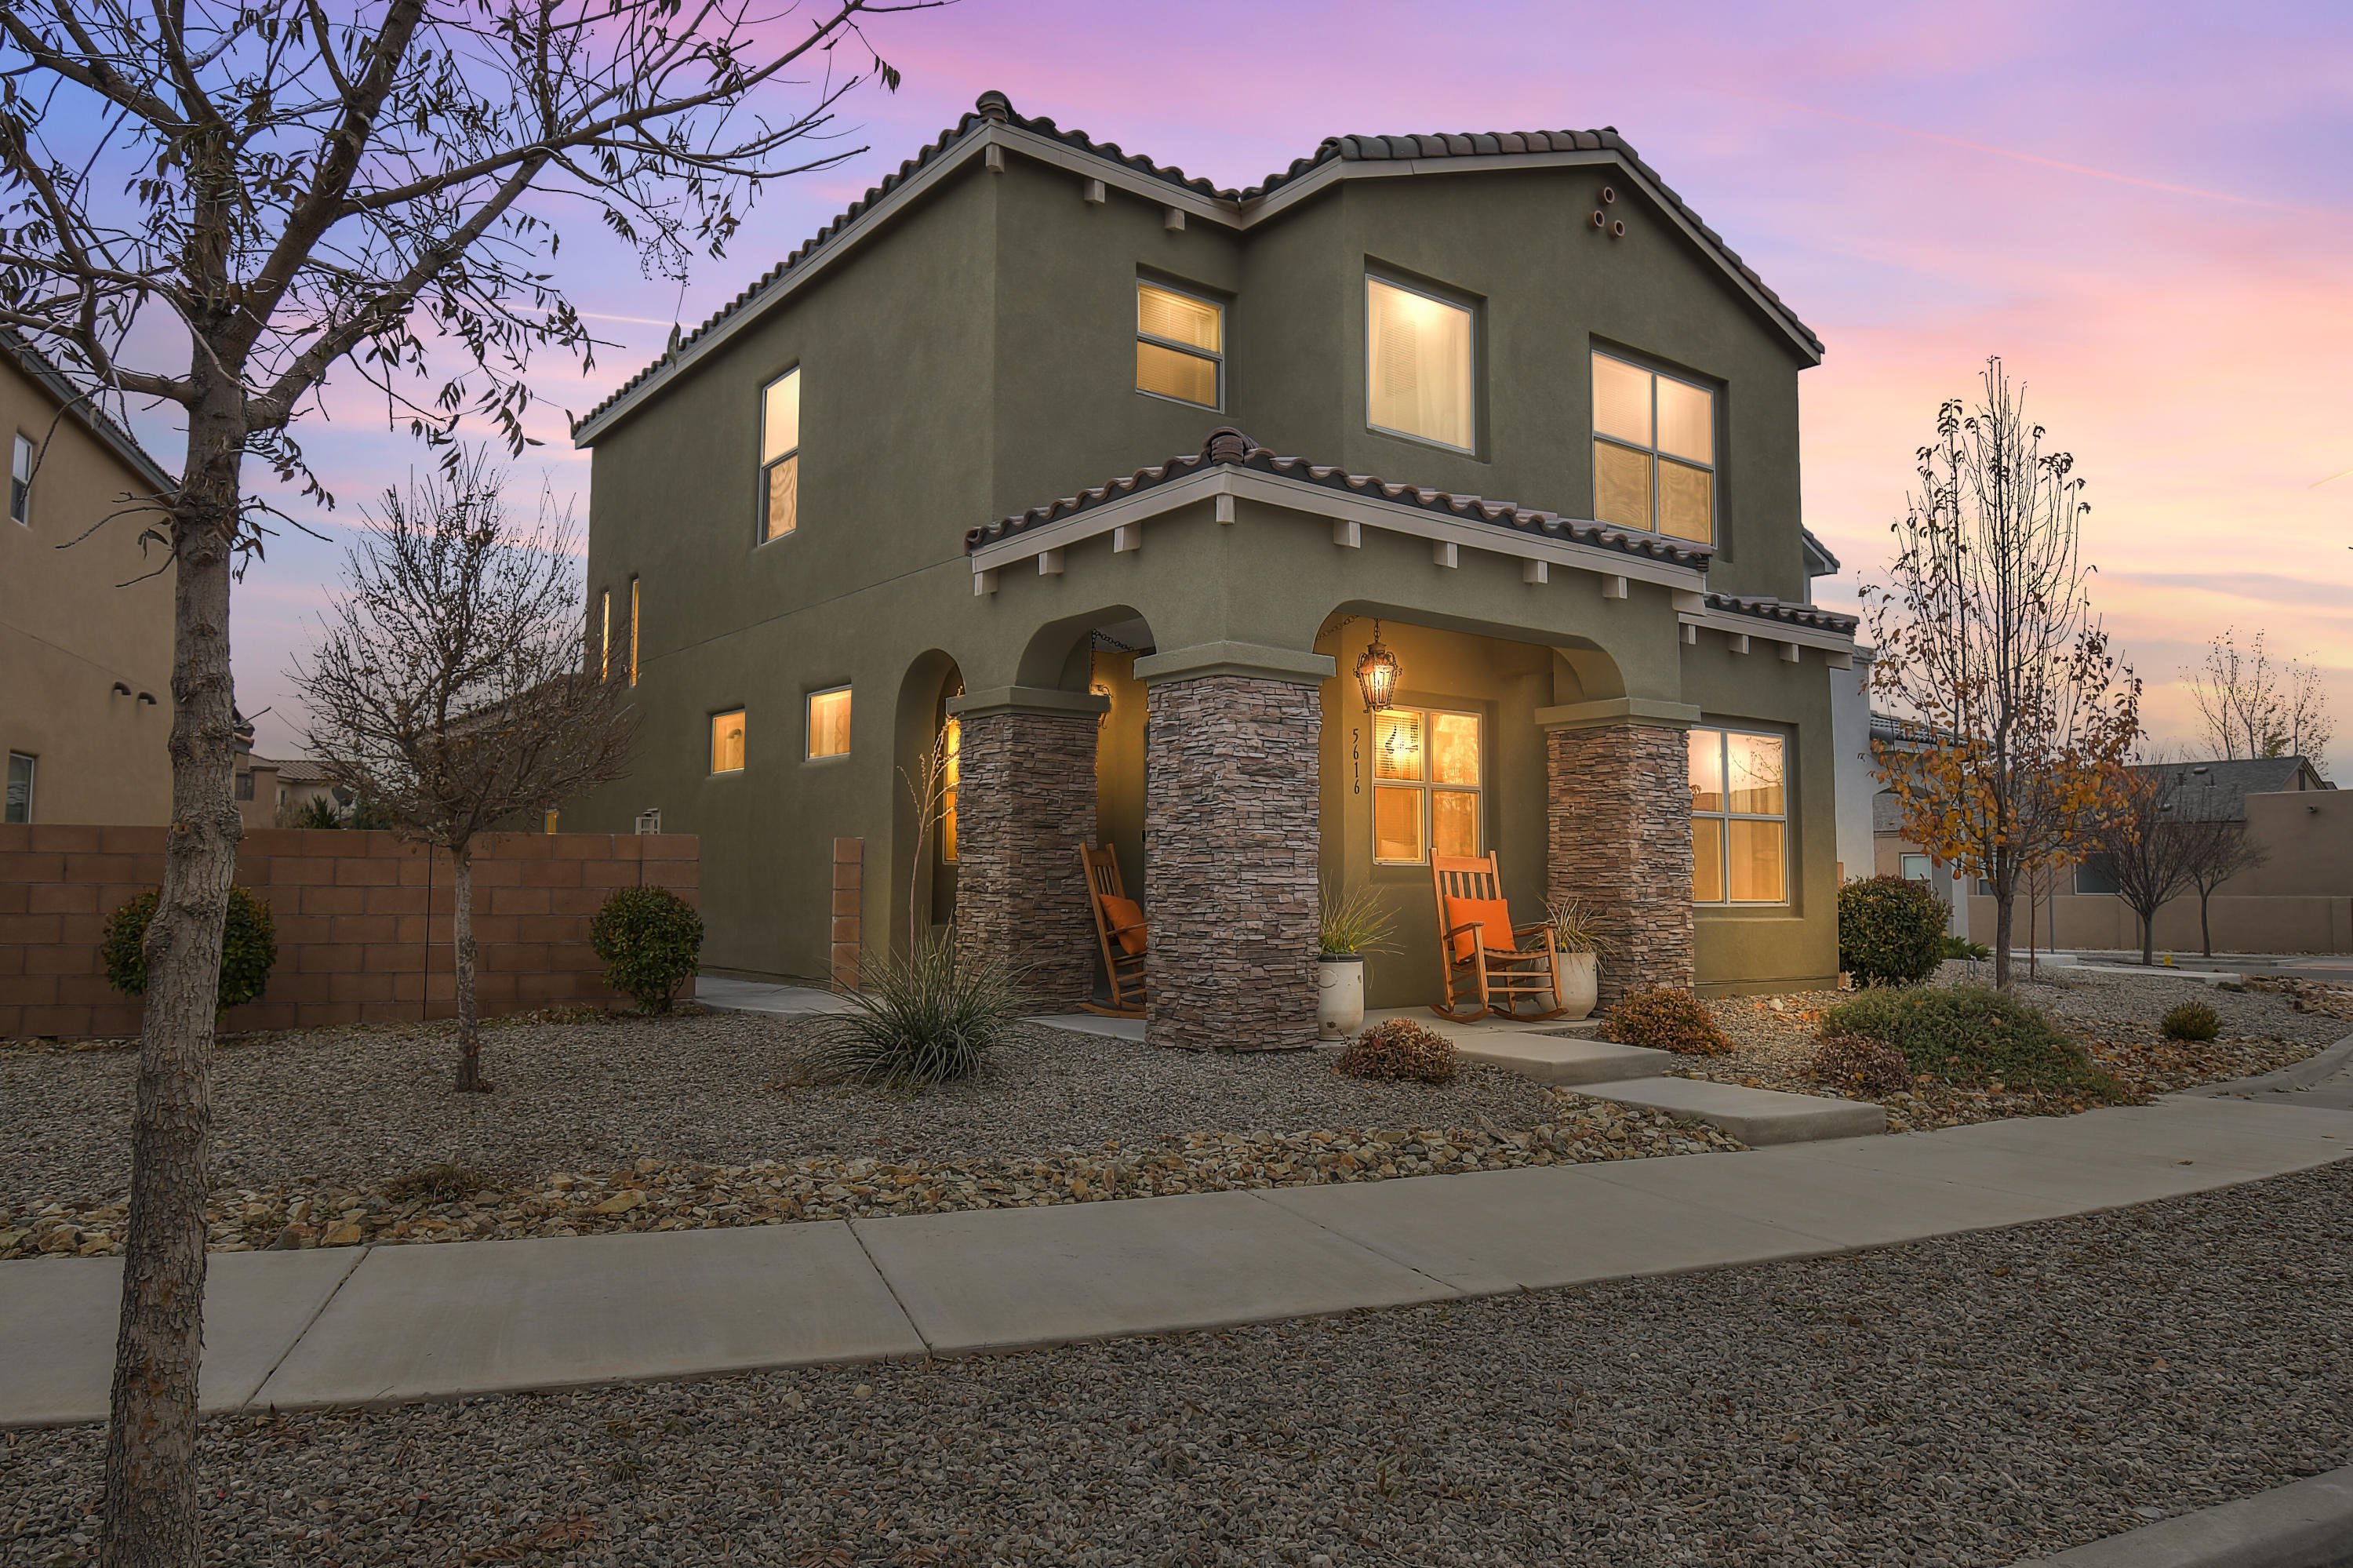 Immaculate!  Modern floorplan with popular grey/white color scheme.  With Plenty of upgrades including cabinetry with contemporary style hardware, plank tile floors, stainless steel appliances.  Beautiful master suite with Spa like master bath.  Plenty of room to entertain and enjoy the fully professionally landscaped back yard.